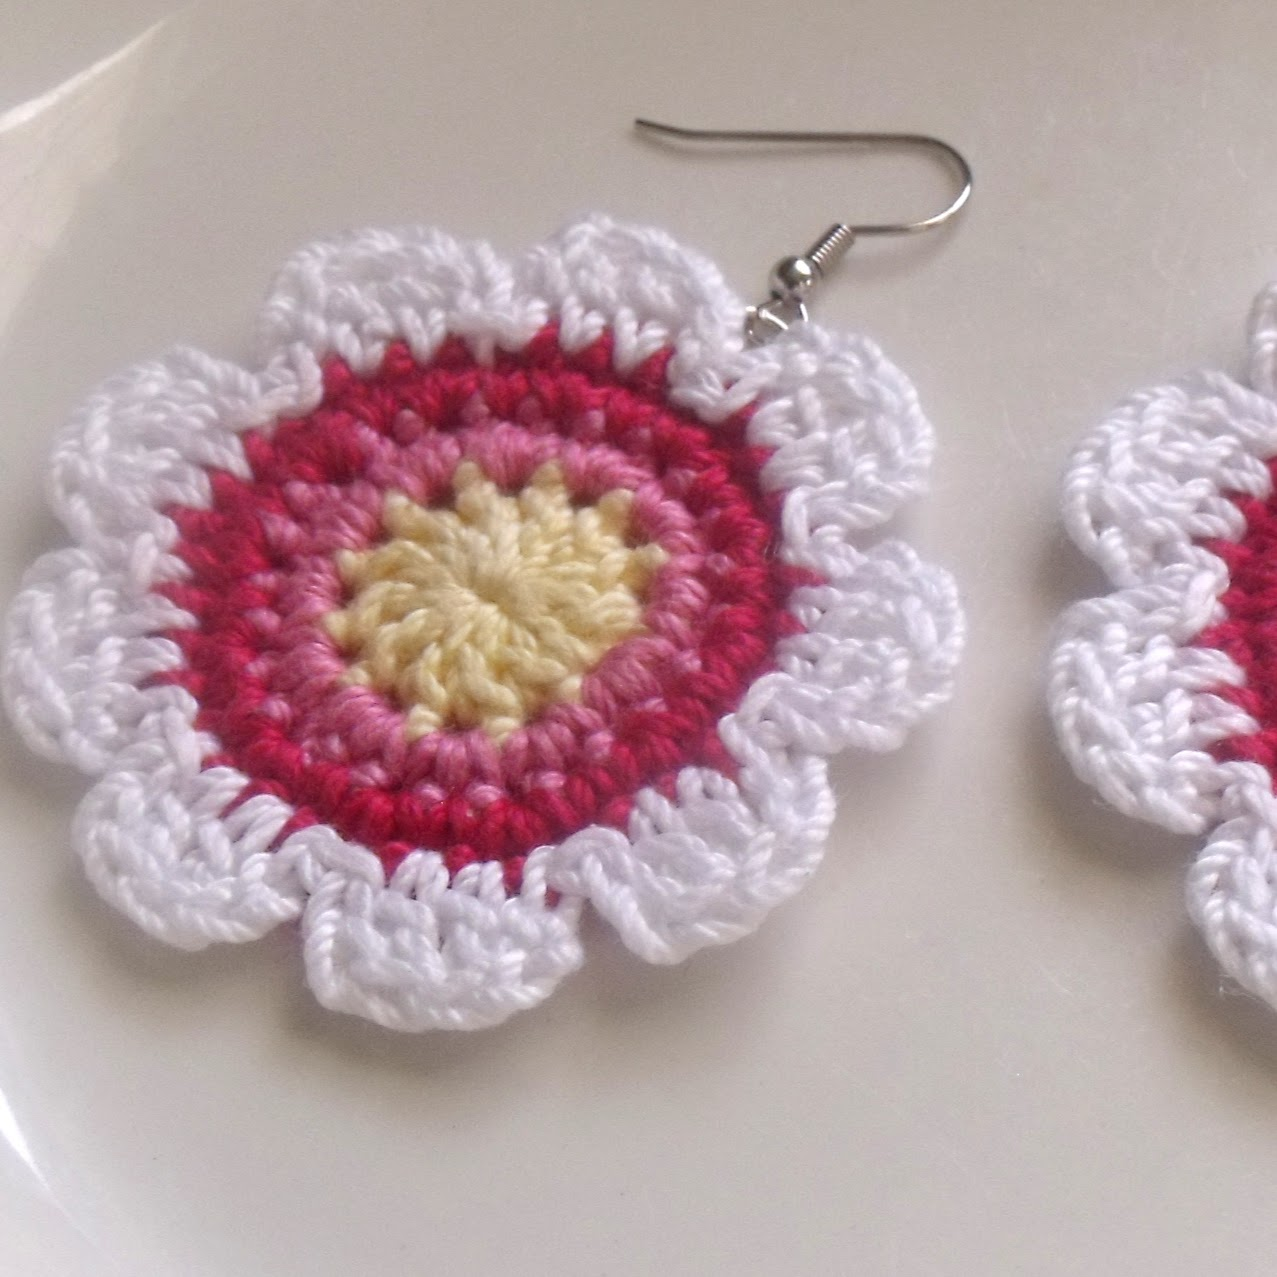 Diva Stitches Crochet Blog: Flower Power Crochet Earrings